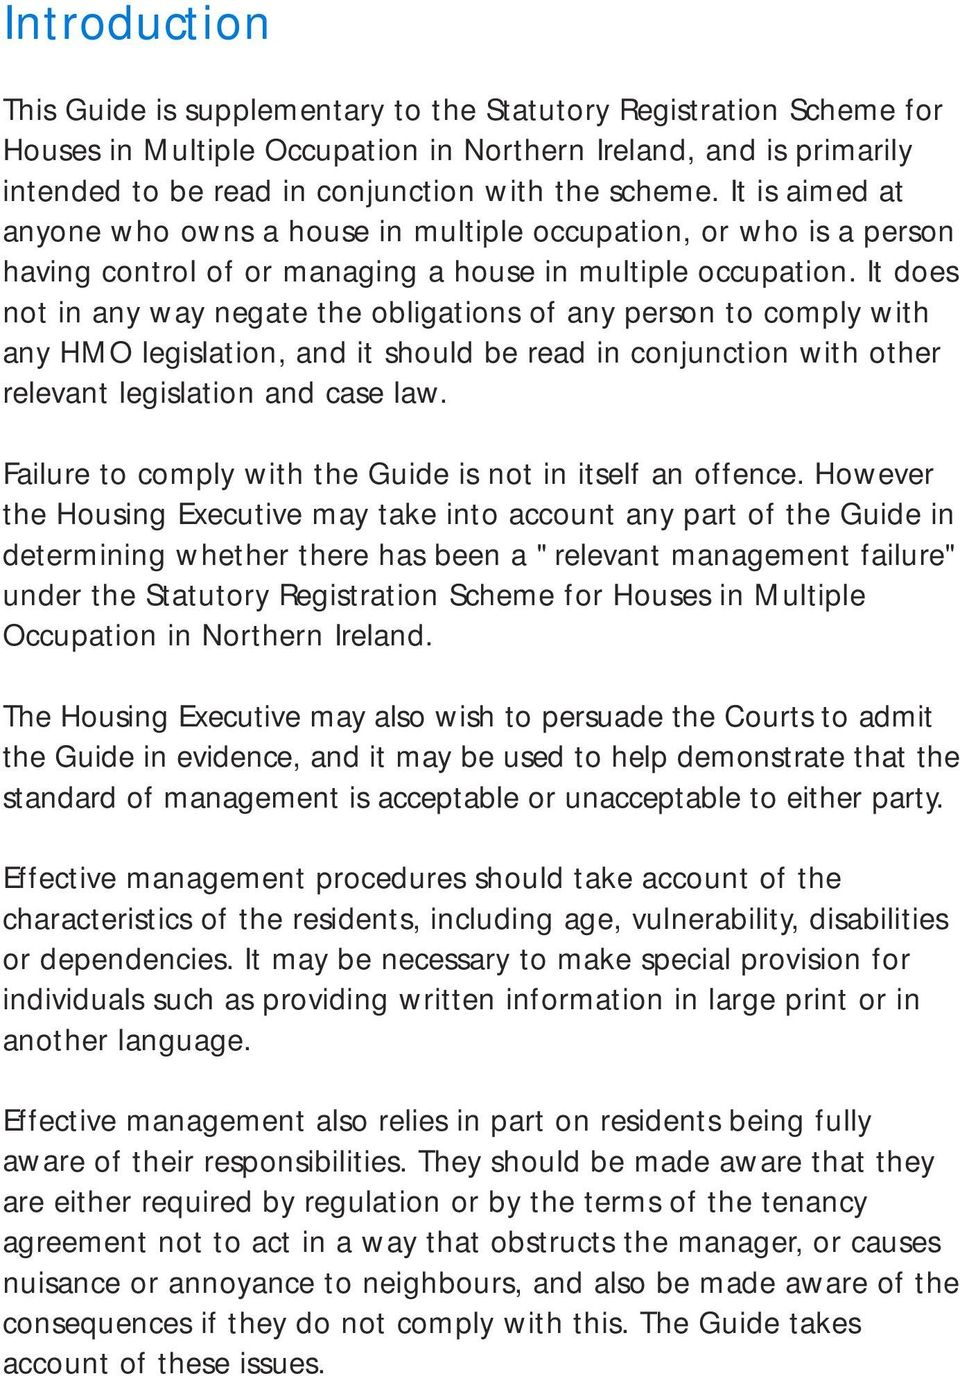 It does not in any way negate the obligations of any person to comply with any HMO legislation, and it should be read in conjunction with other relevant legislation and case law.